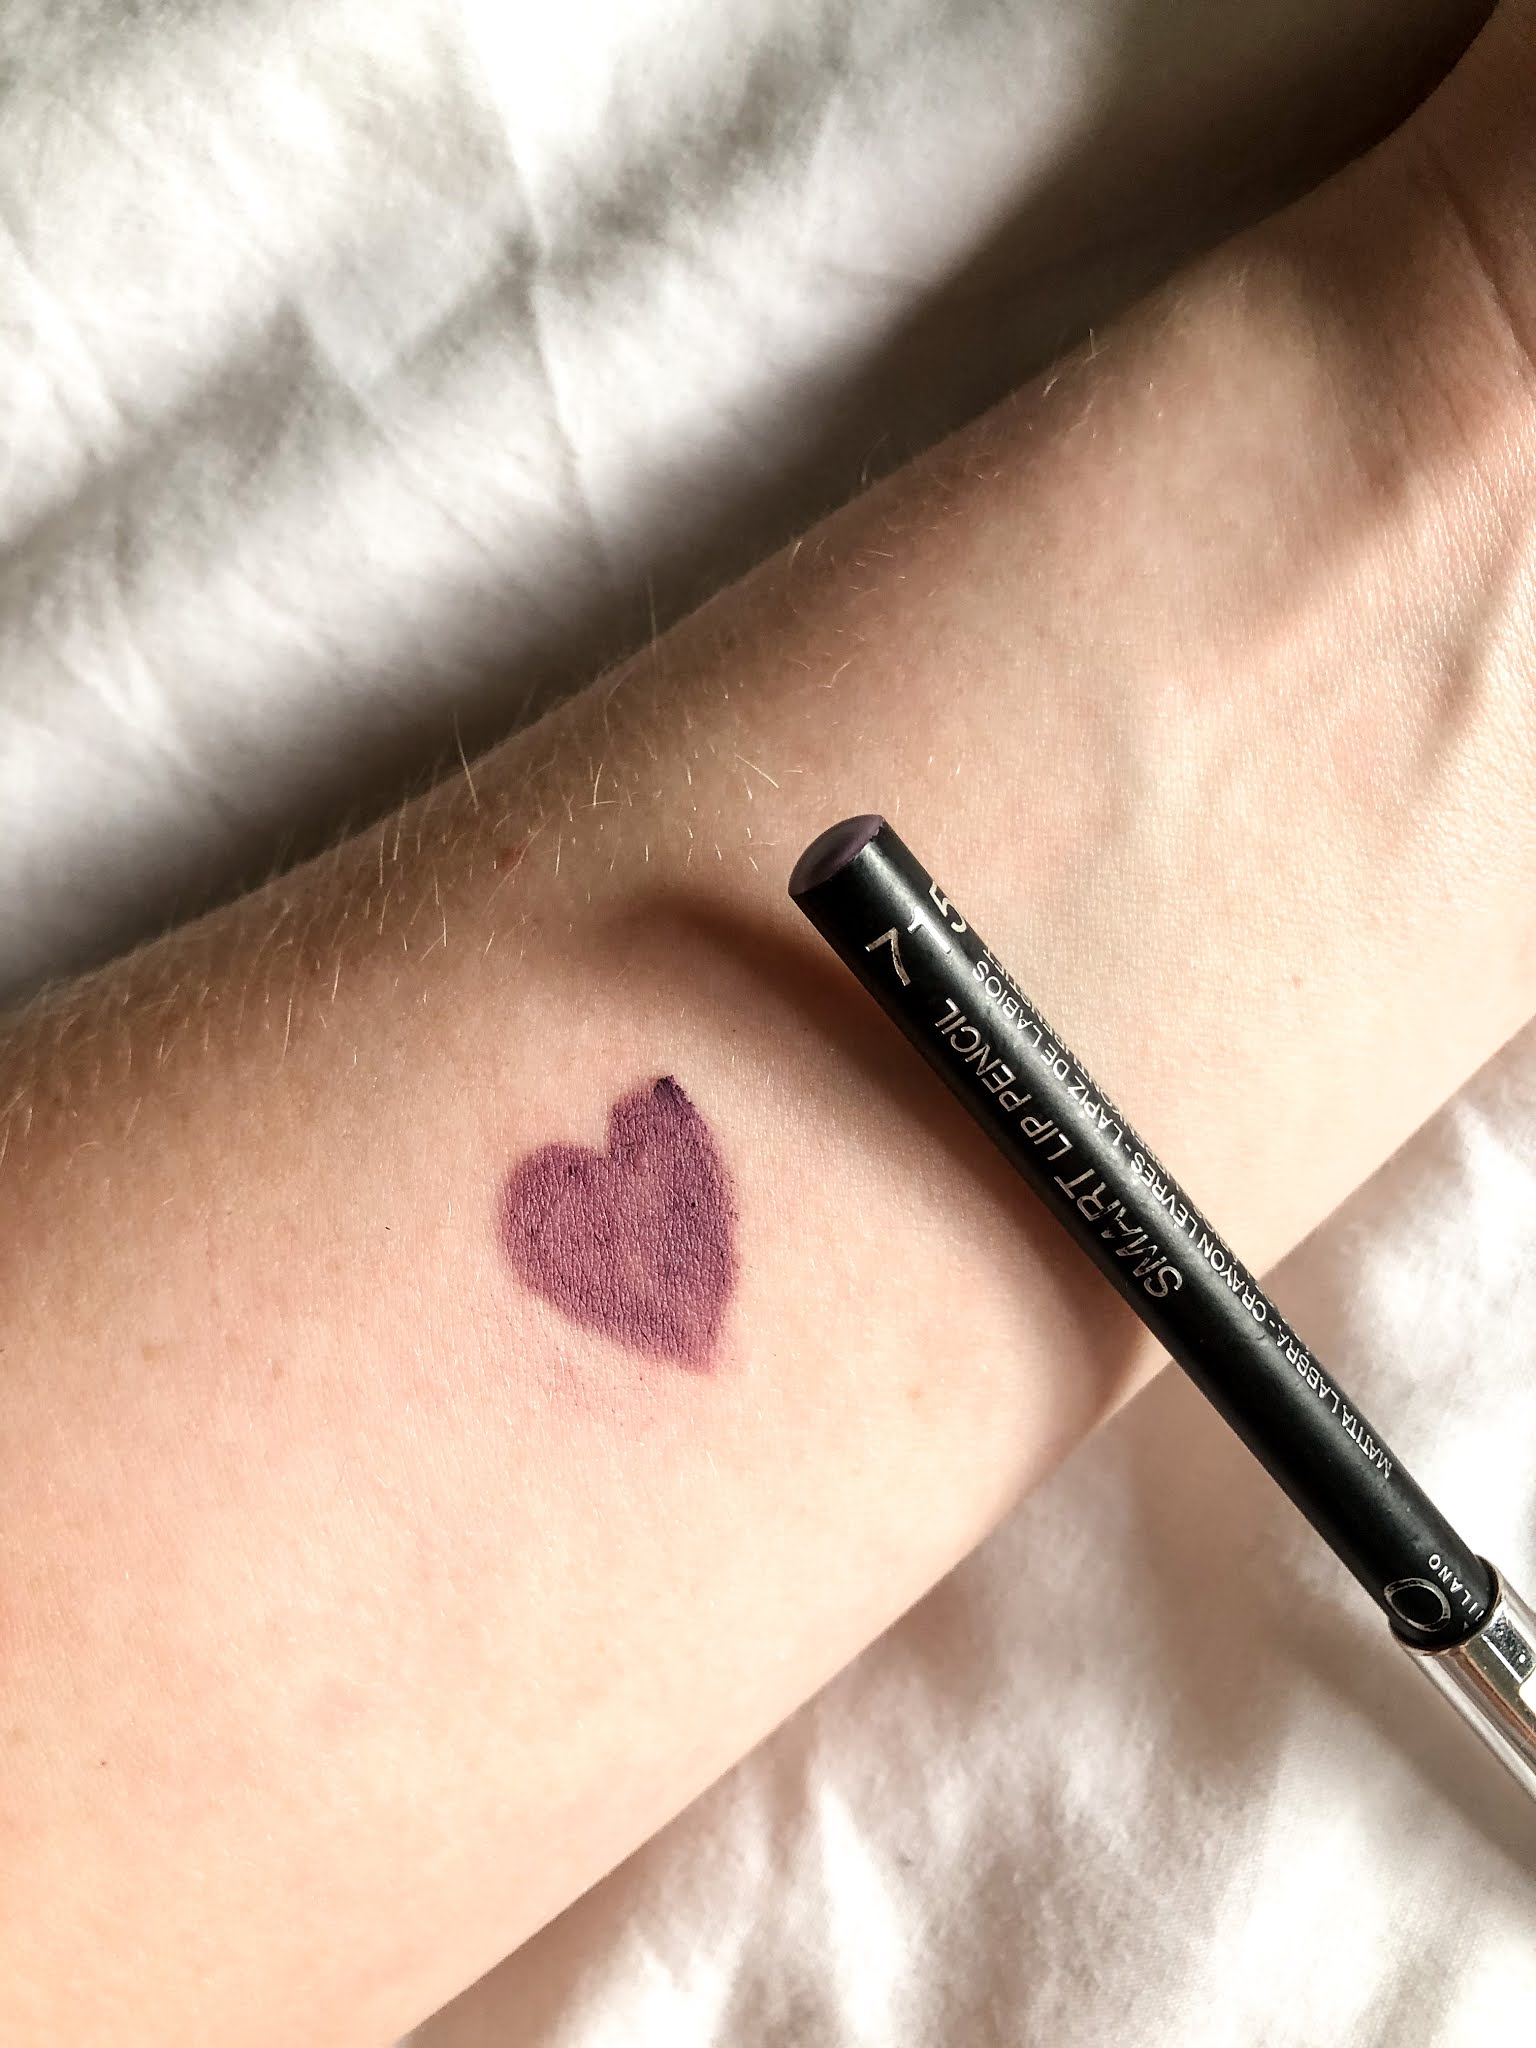 Kiko lip pencil review and swatches in shade peony violet.